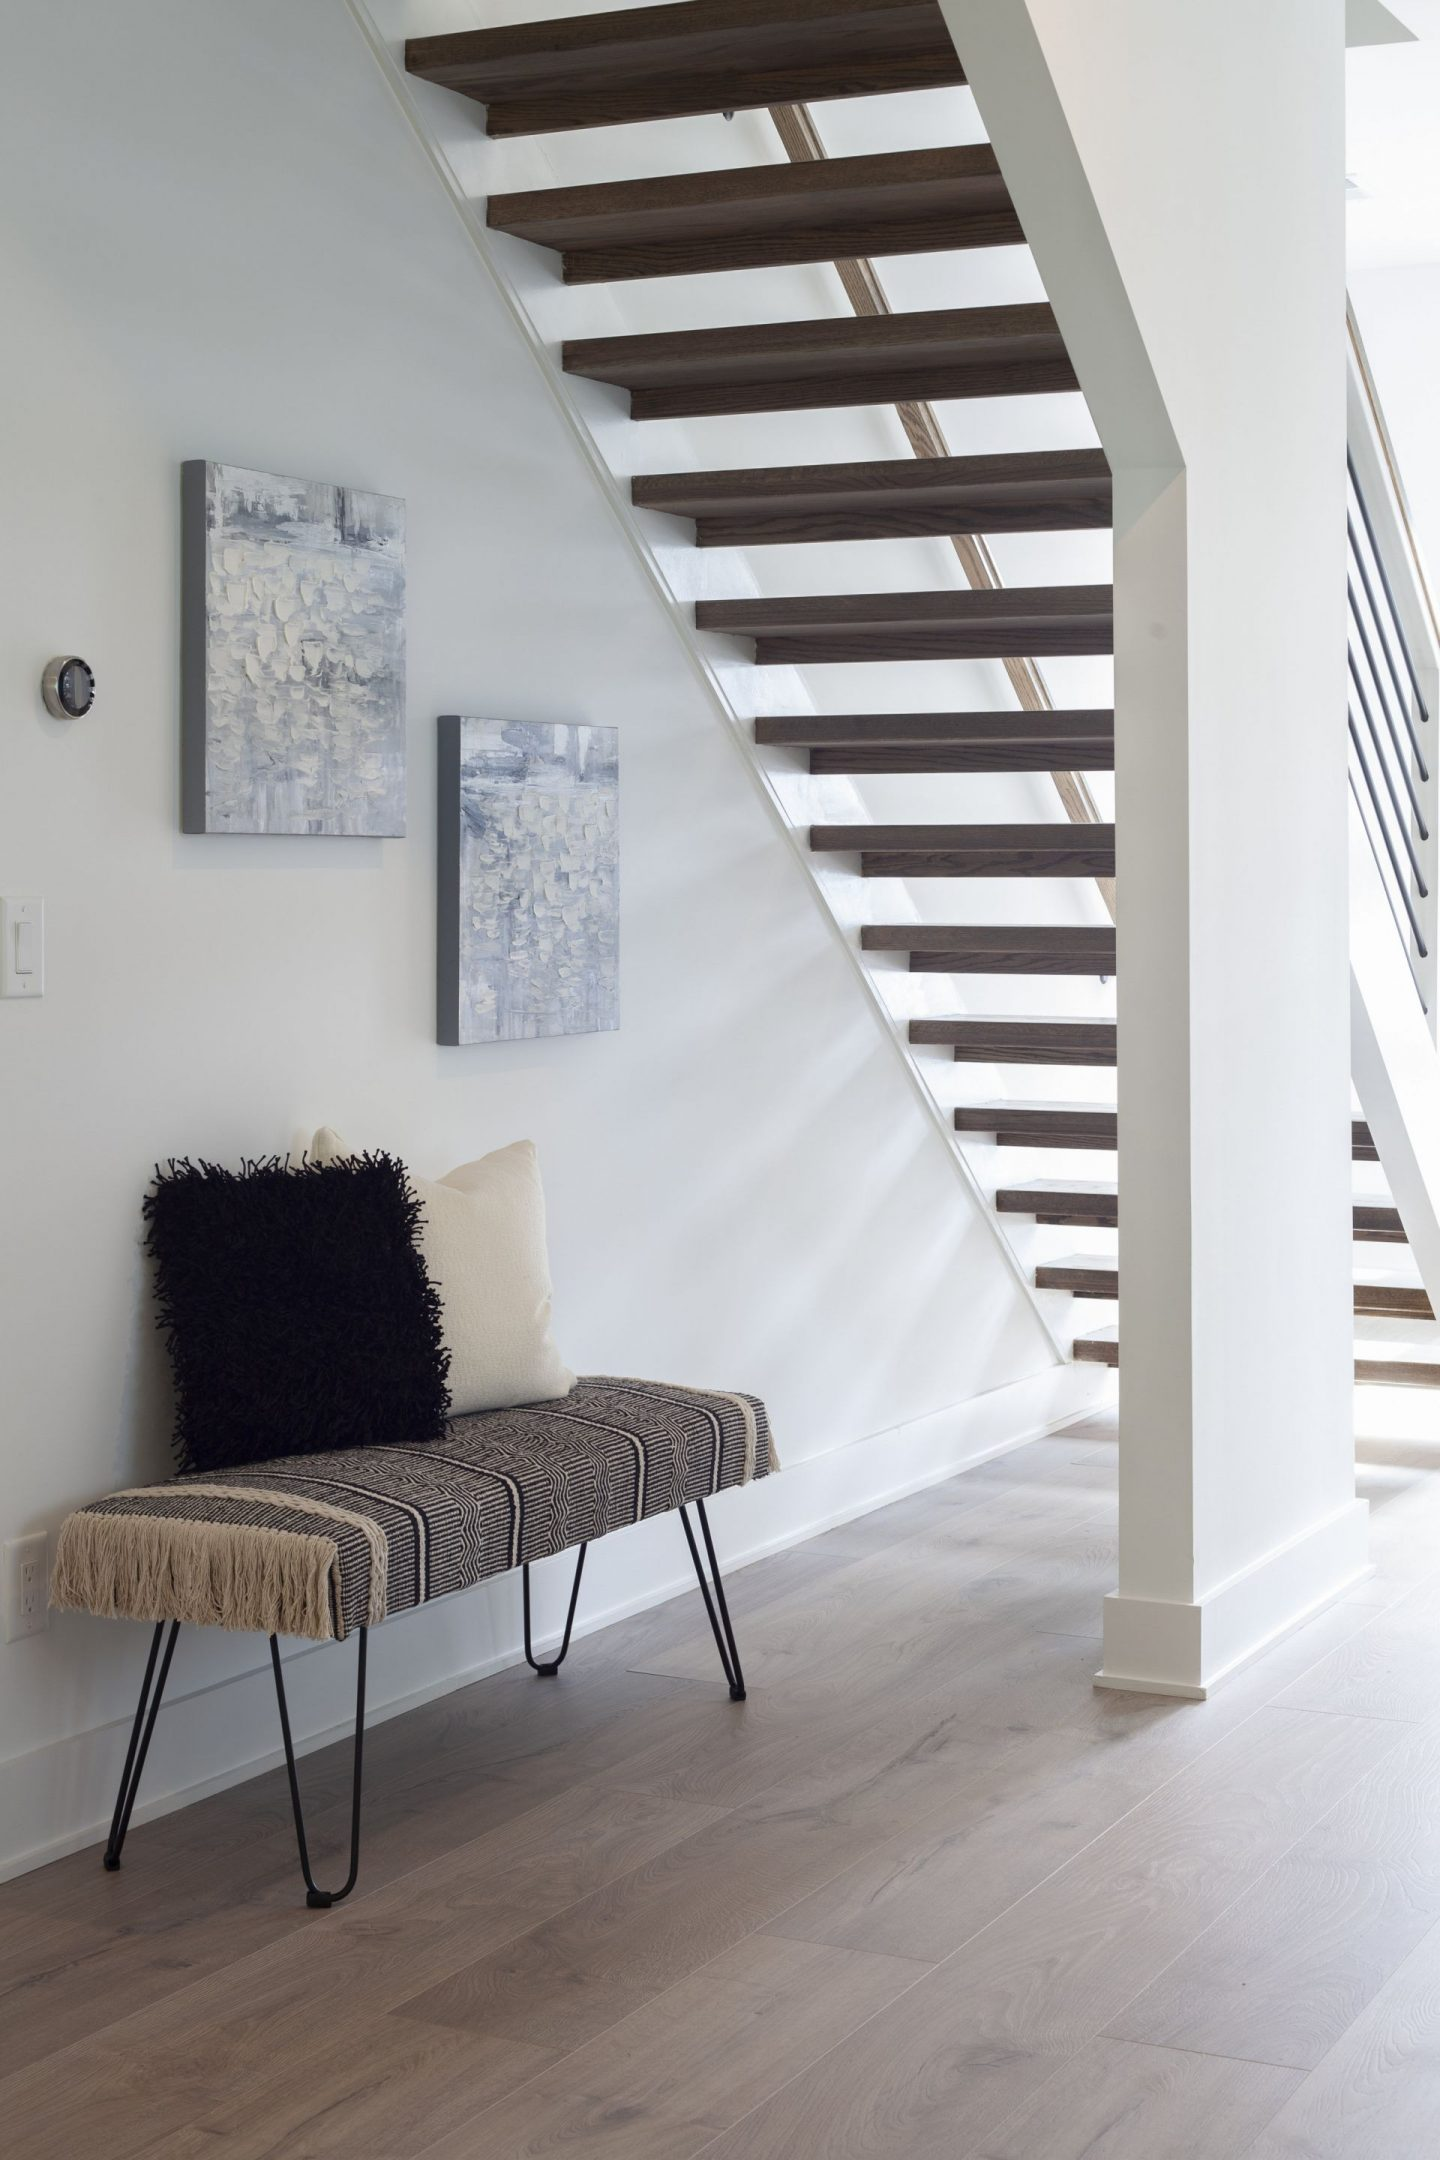 Floating Staircase - Modern Home - Kale Mills - Charlotte, NC